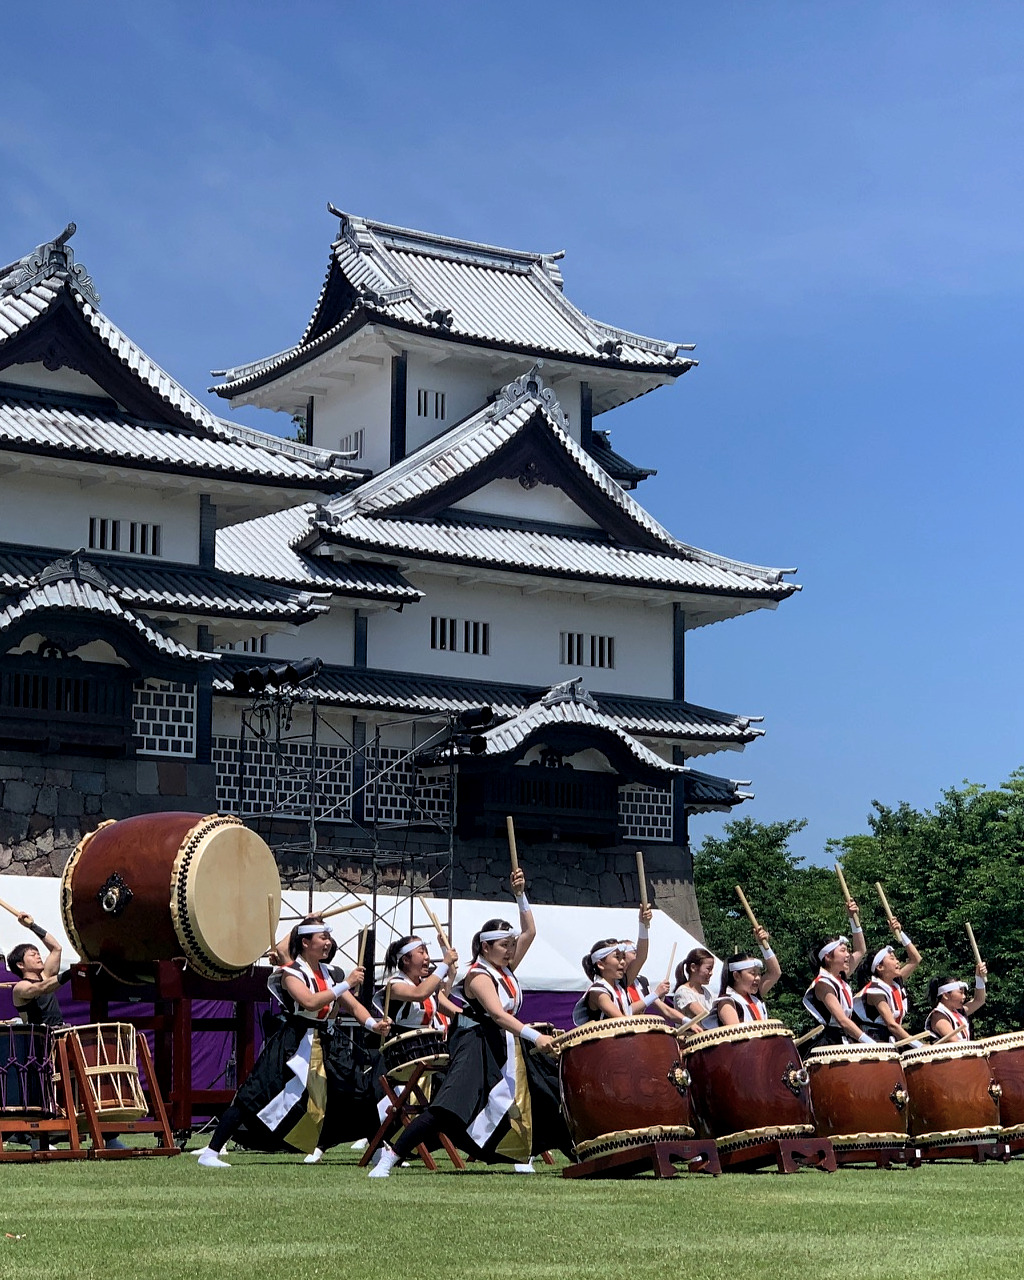 Taiko drummers in front of Kanazawa Castle during the Hyakumangoku Festival